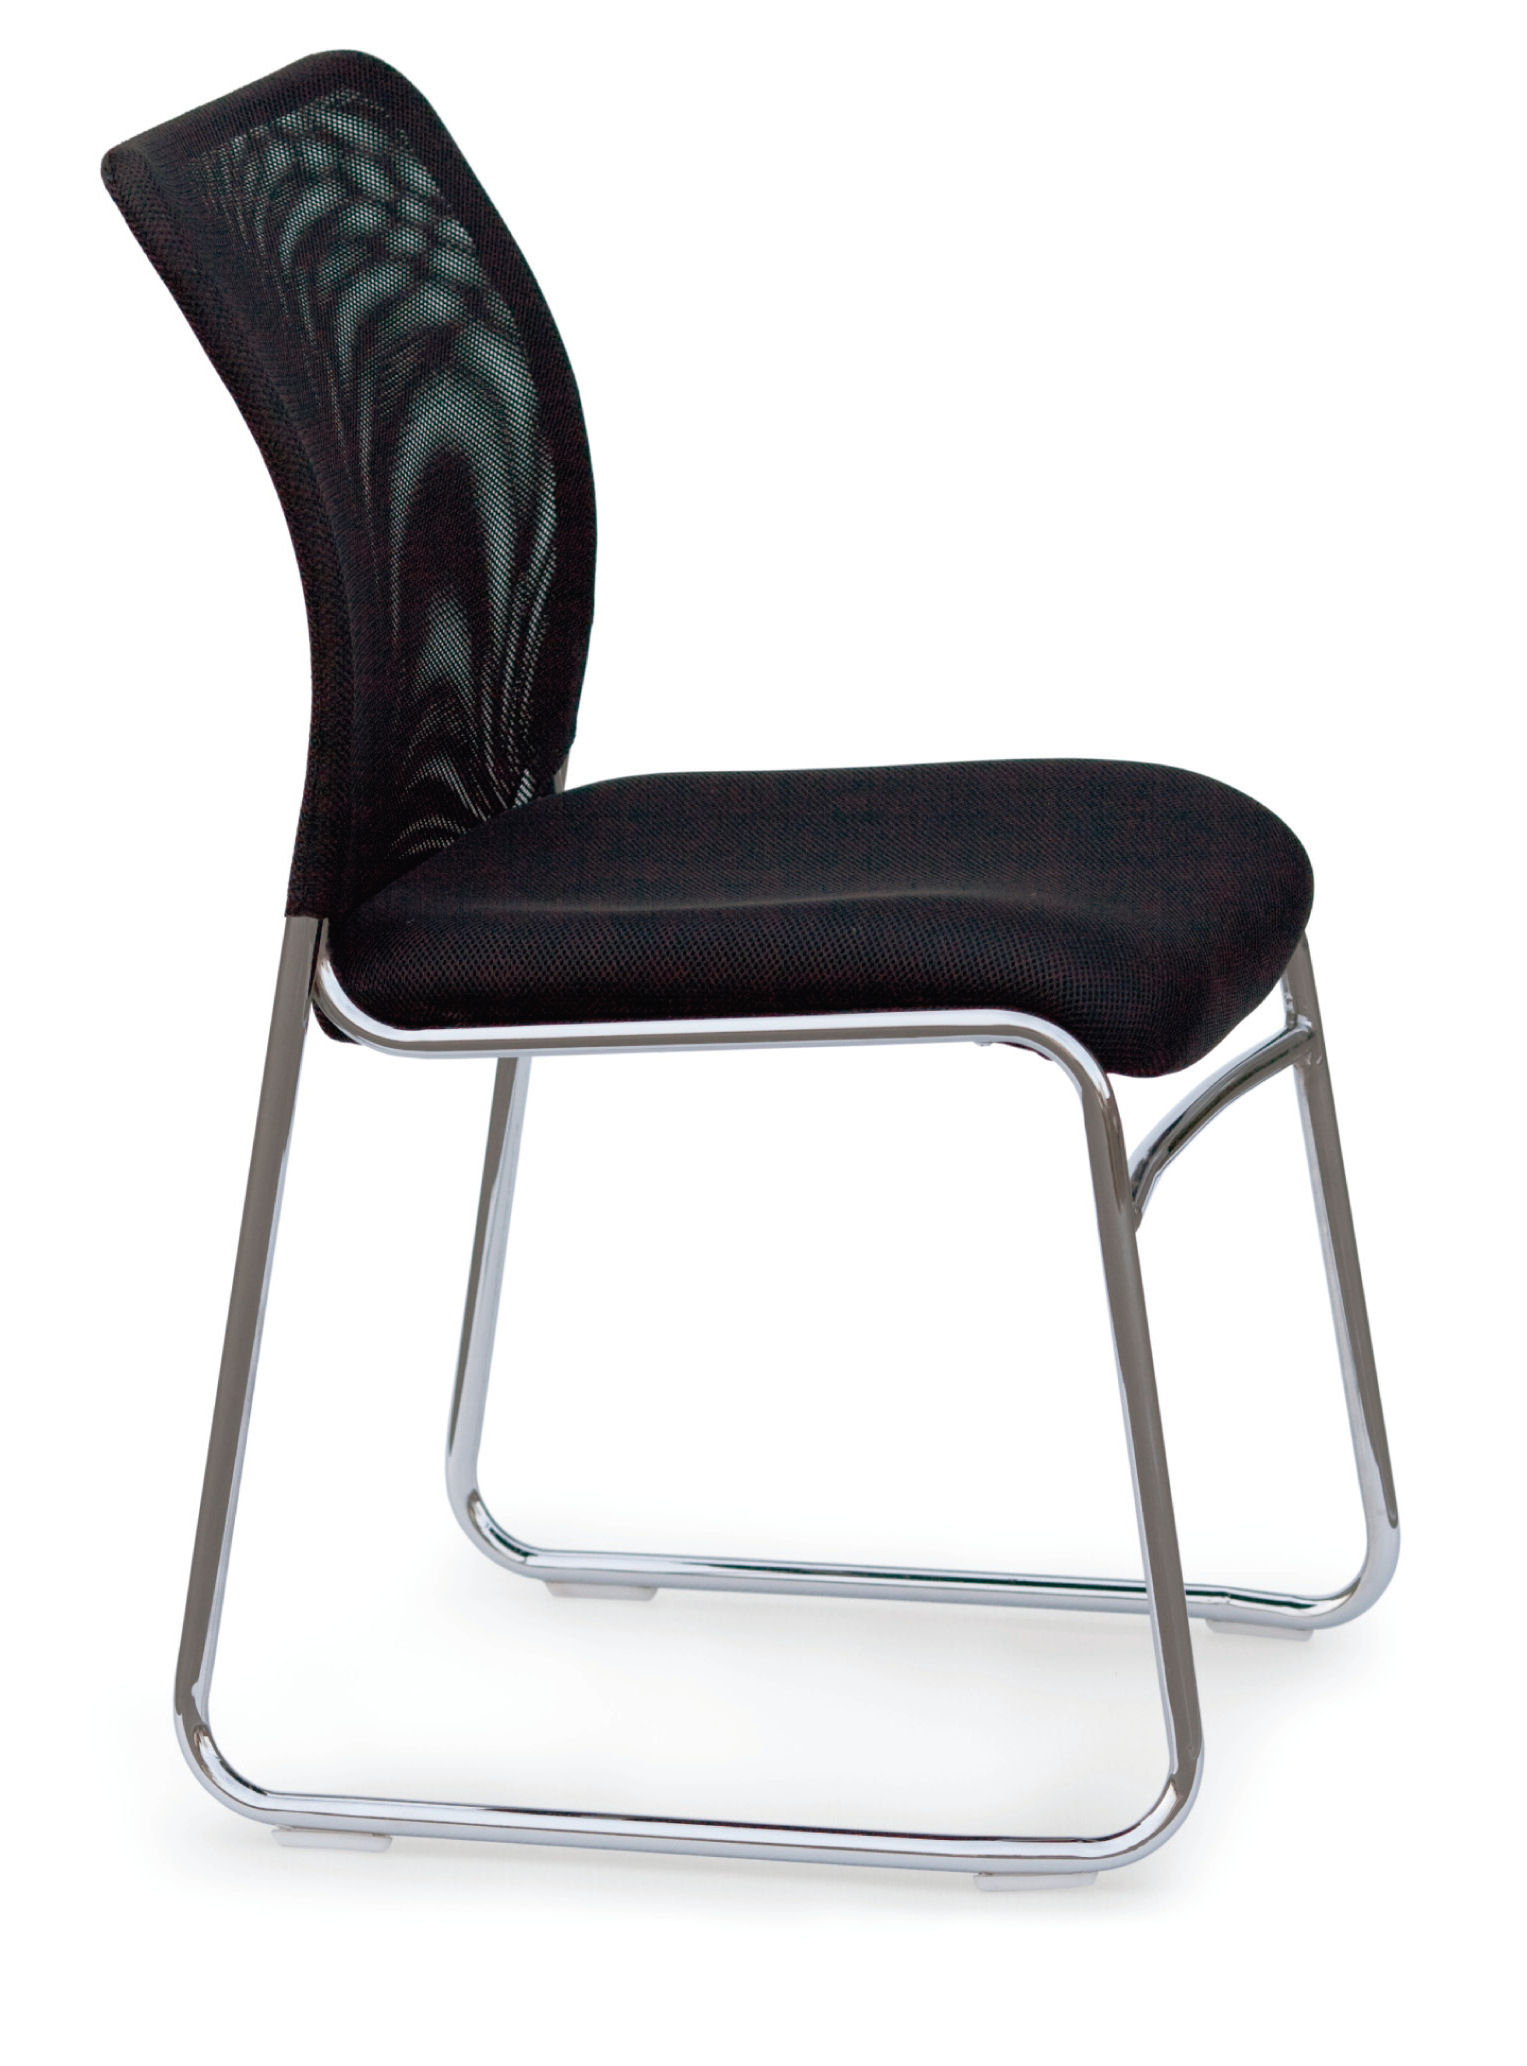 Desk Chairs Without Wheels You Ll Love In 2021 Visualhunt